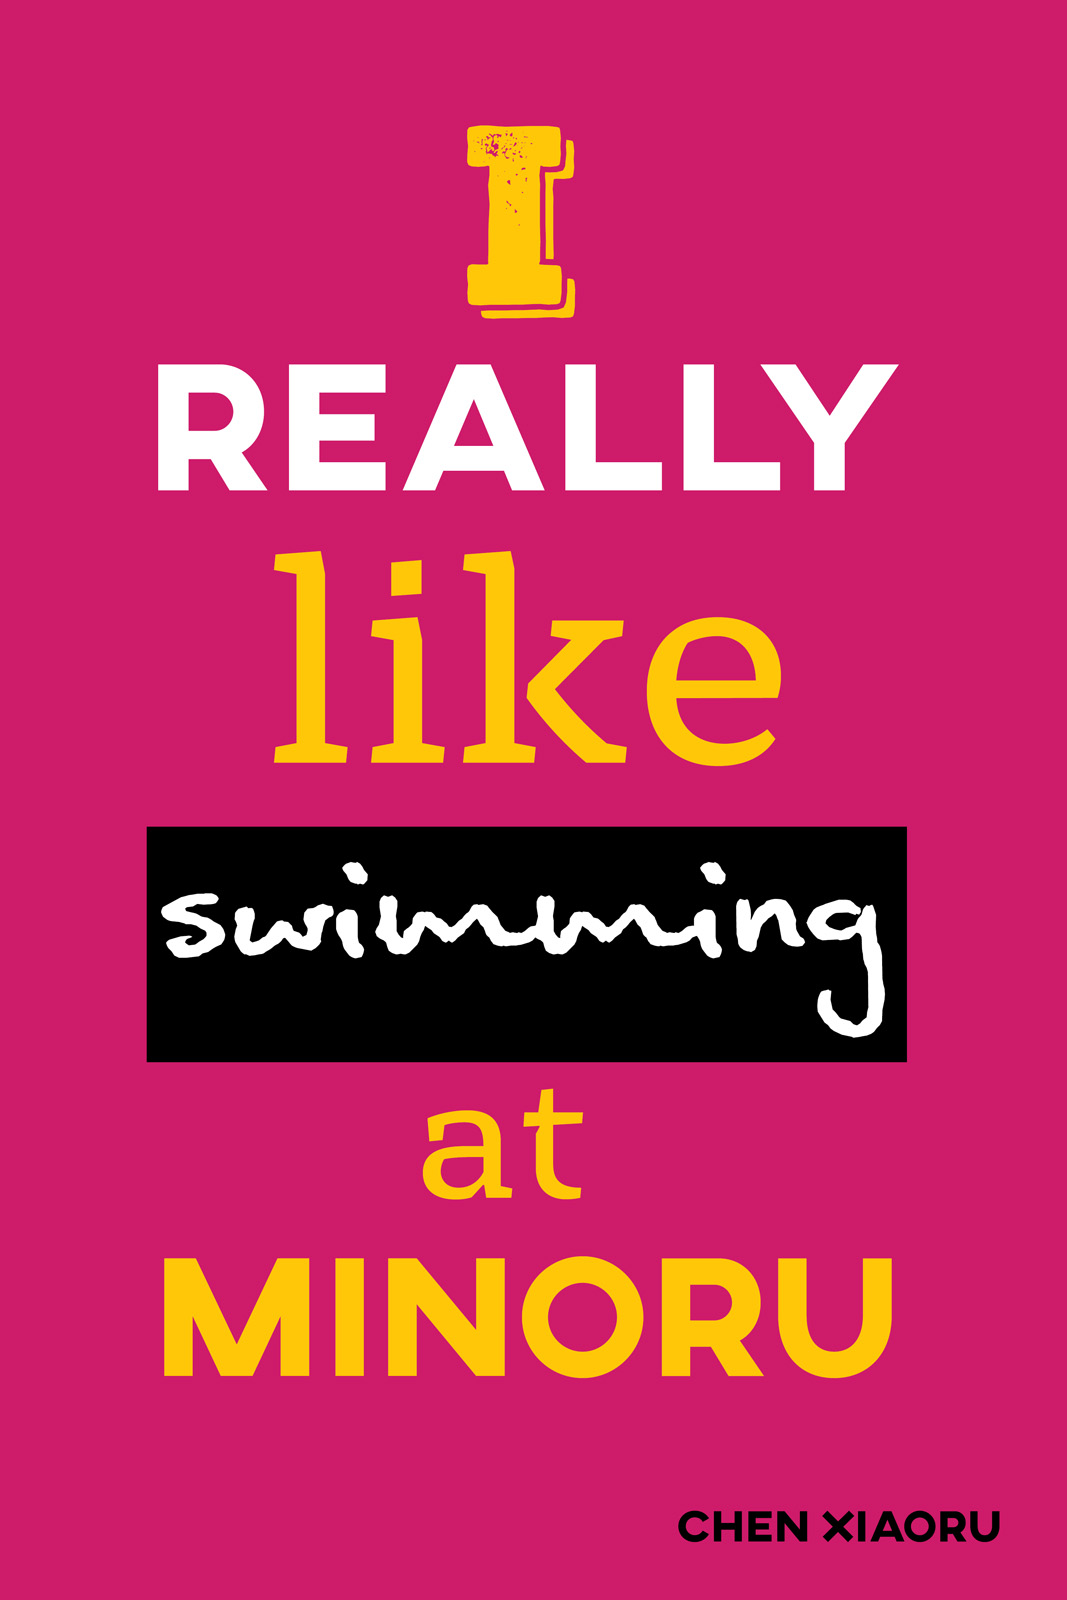 I really like swimming at Minoru